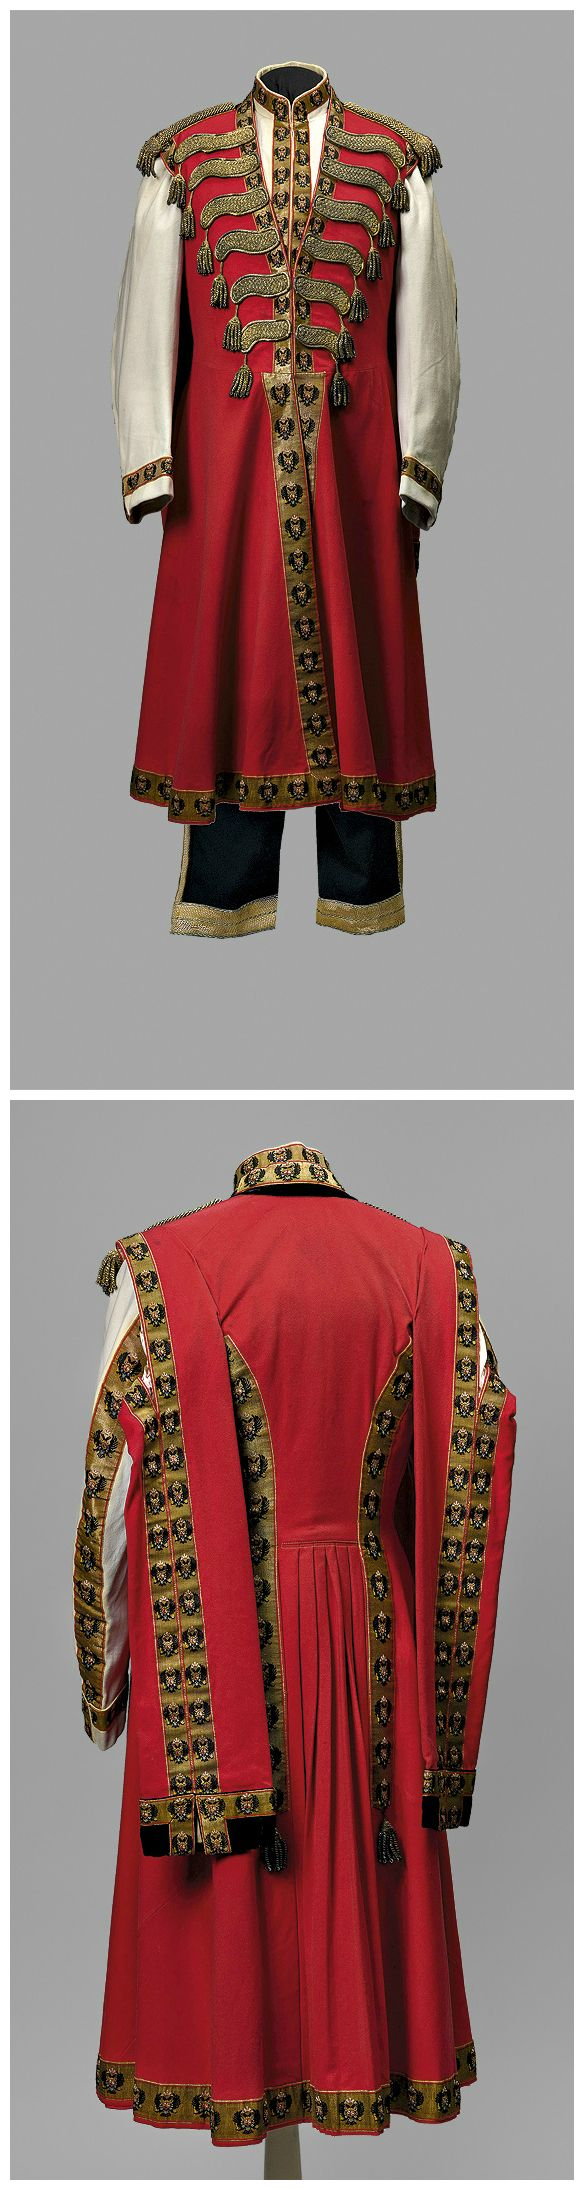 Ceremonial uniform (front and back) of a chamber Cossack (Cossack bodyguard) at the private quarters of Empress Alexandra Fyodorovna. Made by I. P. Lidval Company, St. Petersburg. 1910s. Collection of State Hermitage Museum. The reigning Empress's chamber Cossacks wore predominantly red uniforms, while those serving the Dowager Empress wore blue.